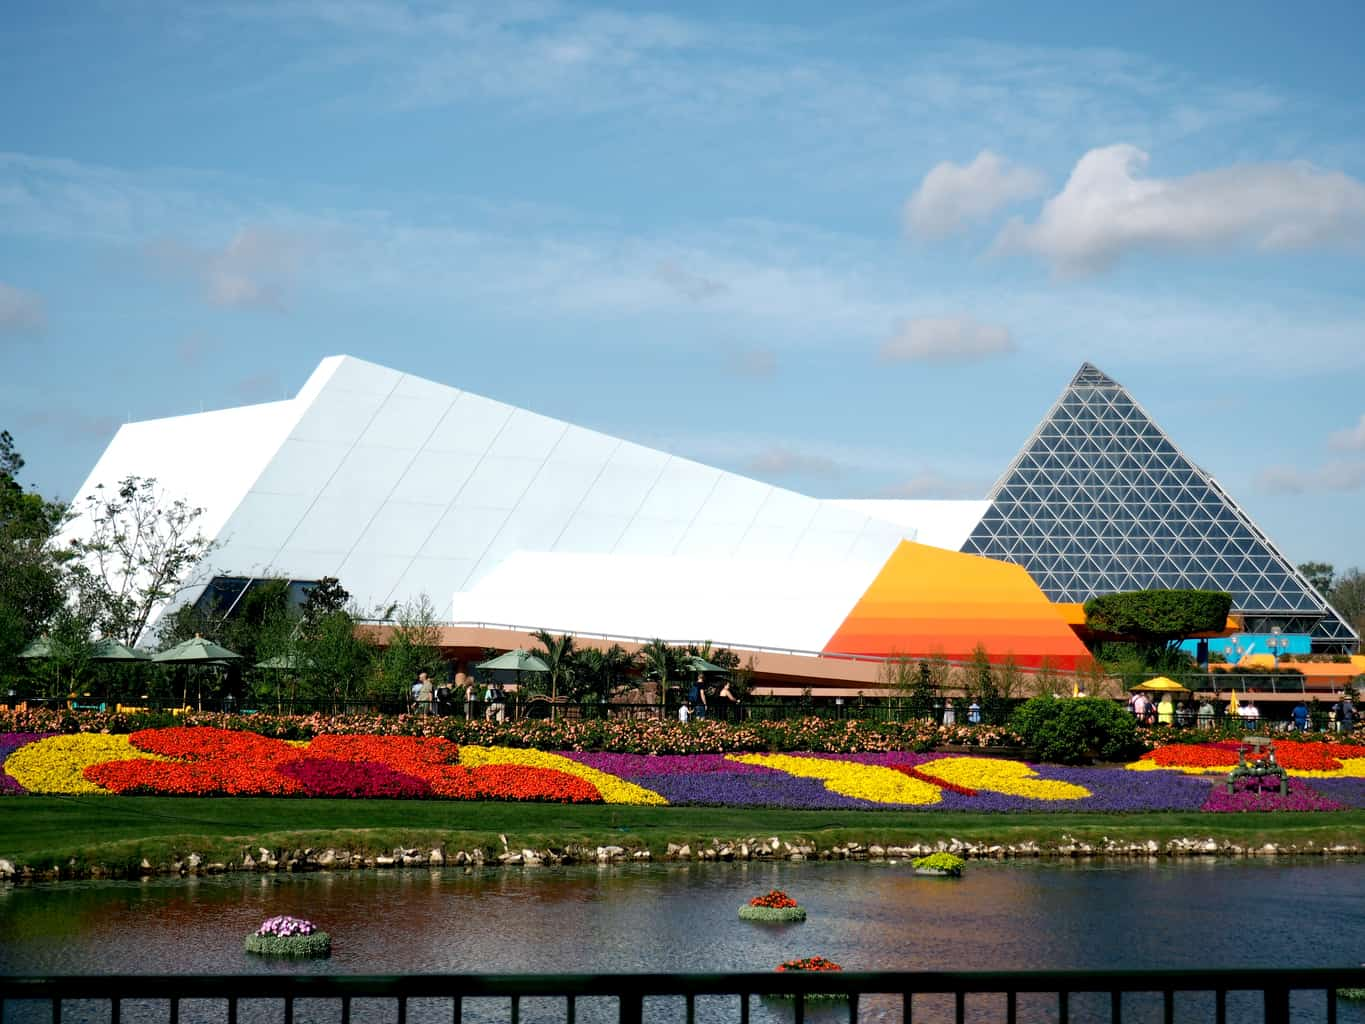 Epcot Flower and Garden Festival: What's New?